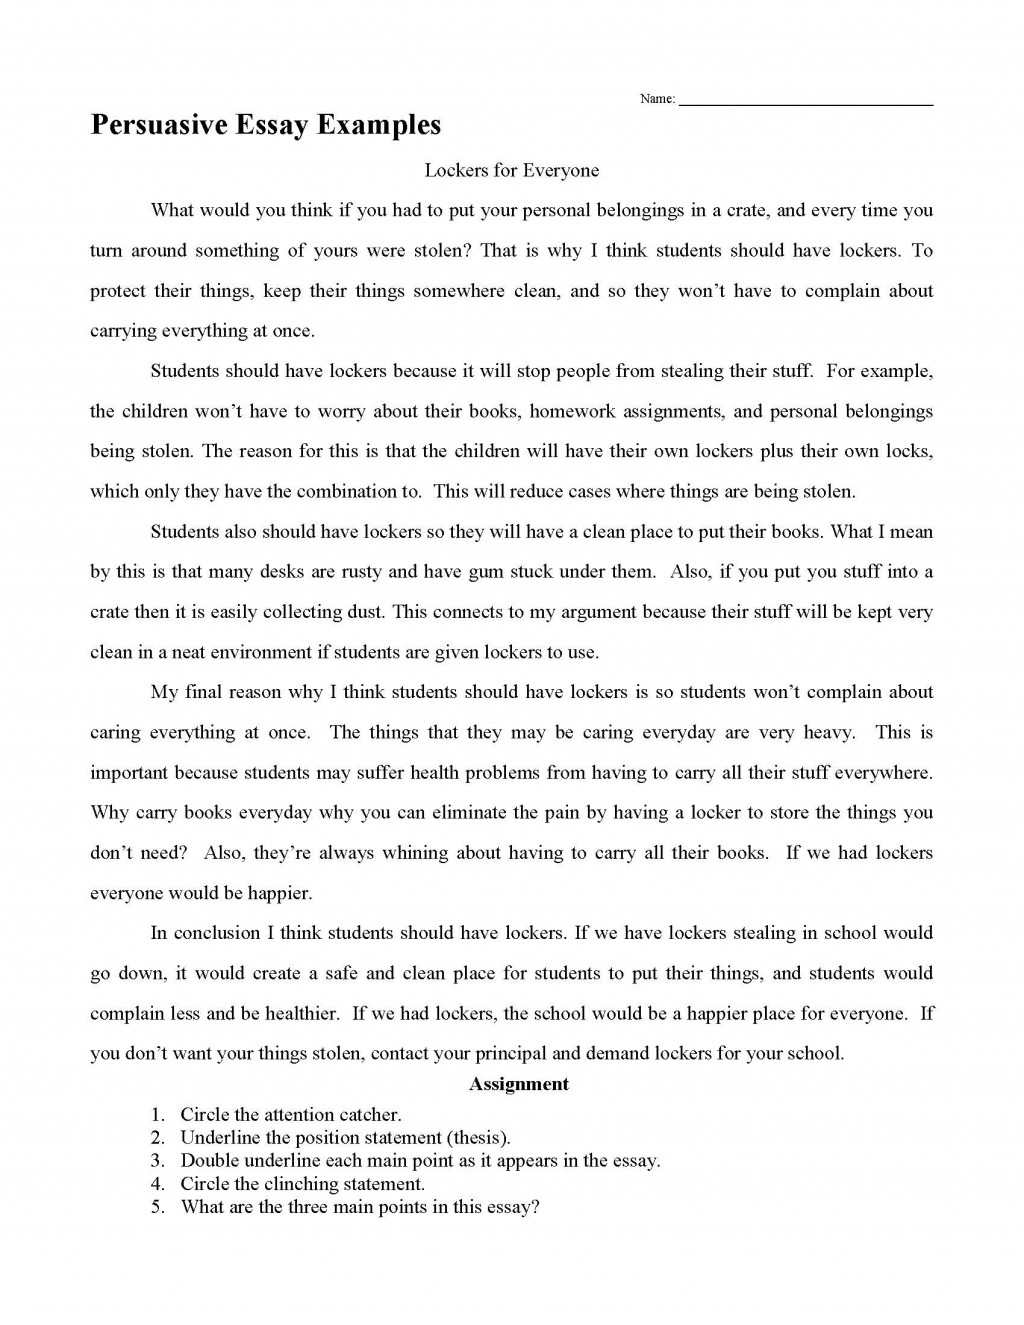 015 Research Paper Immigration Topics Persuasive Essay Examples Stunning Law Illegal Large